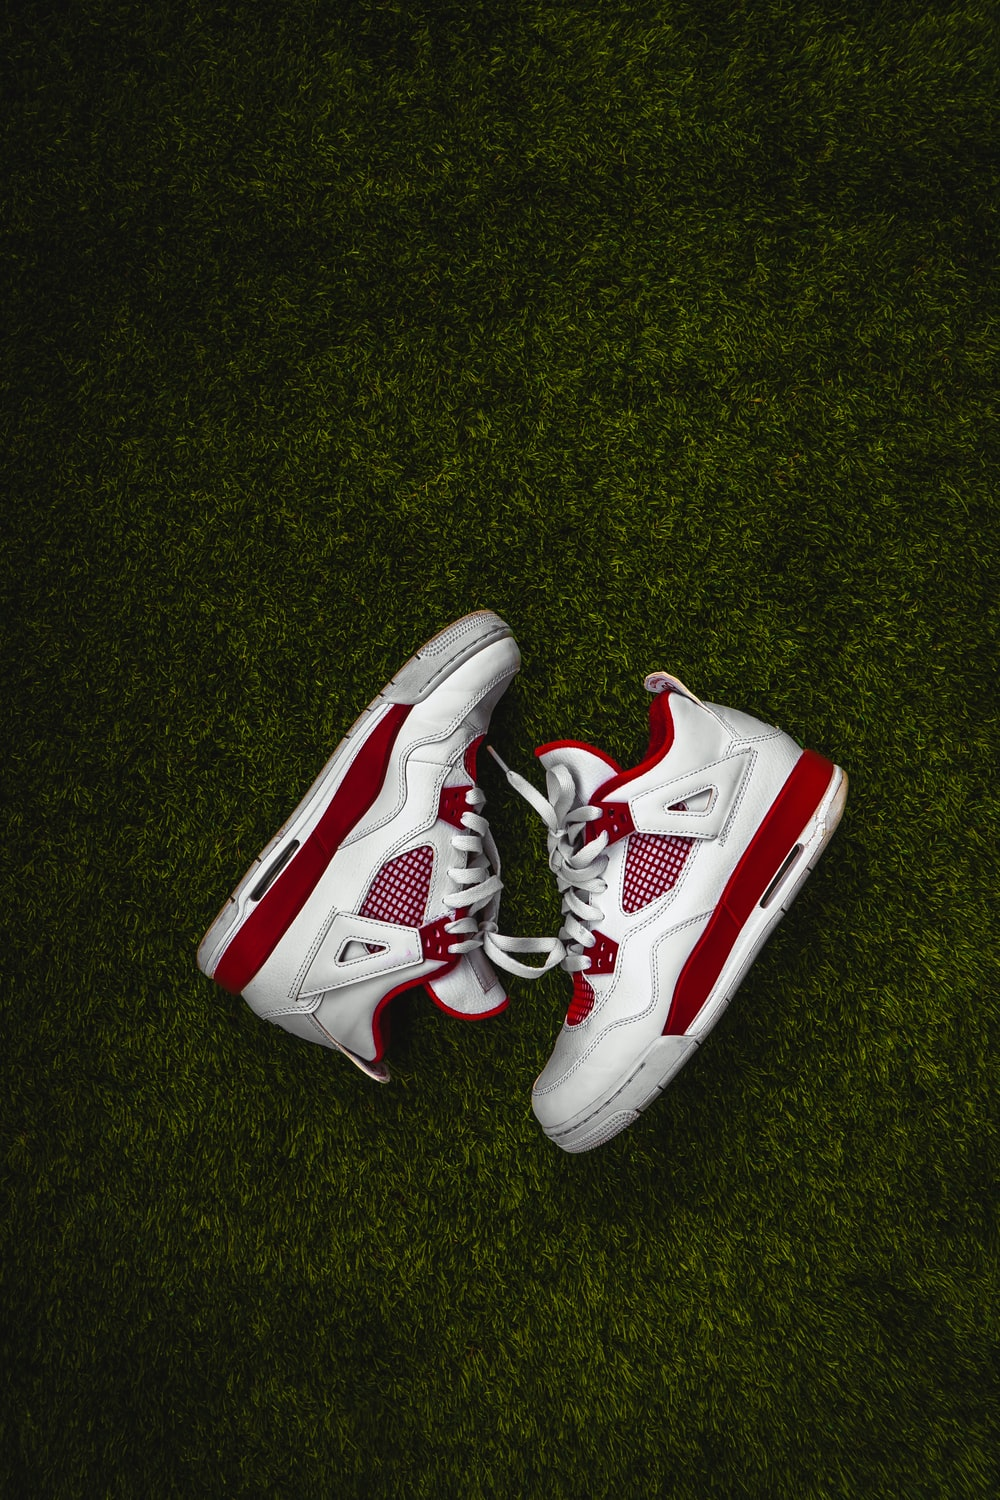 white and red nike basketball shoes on green grass